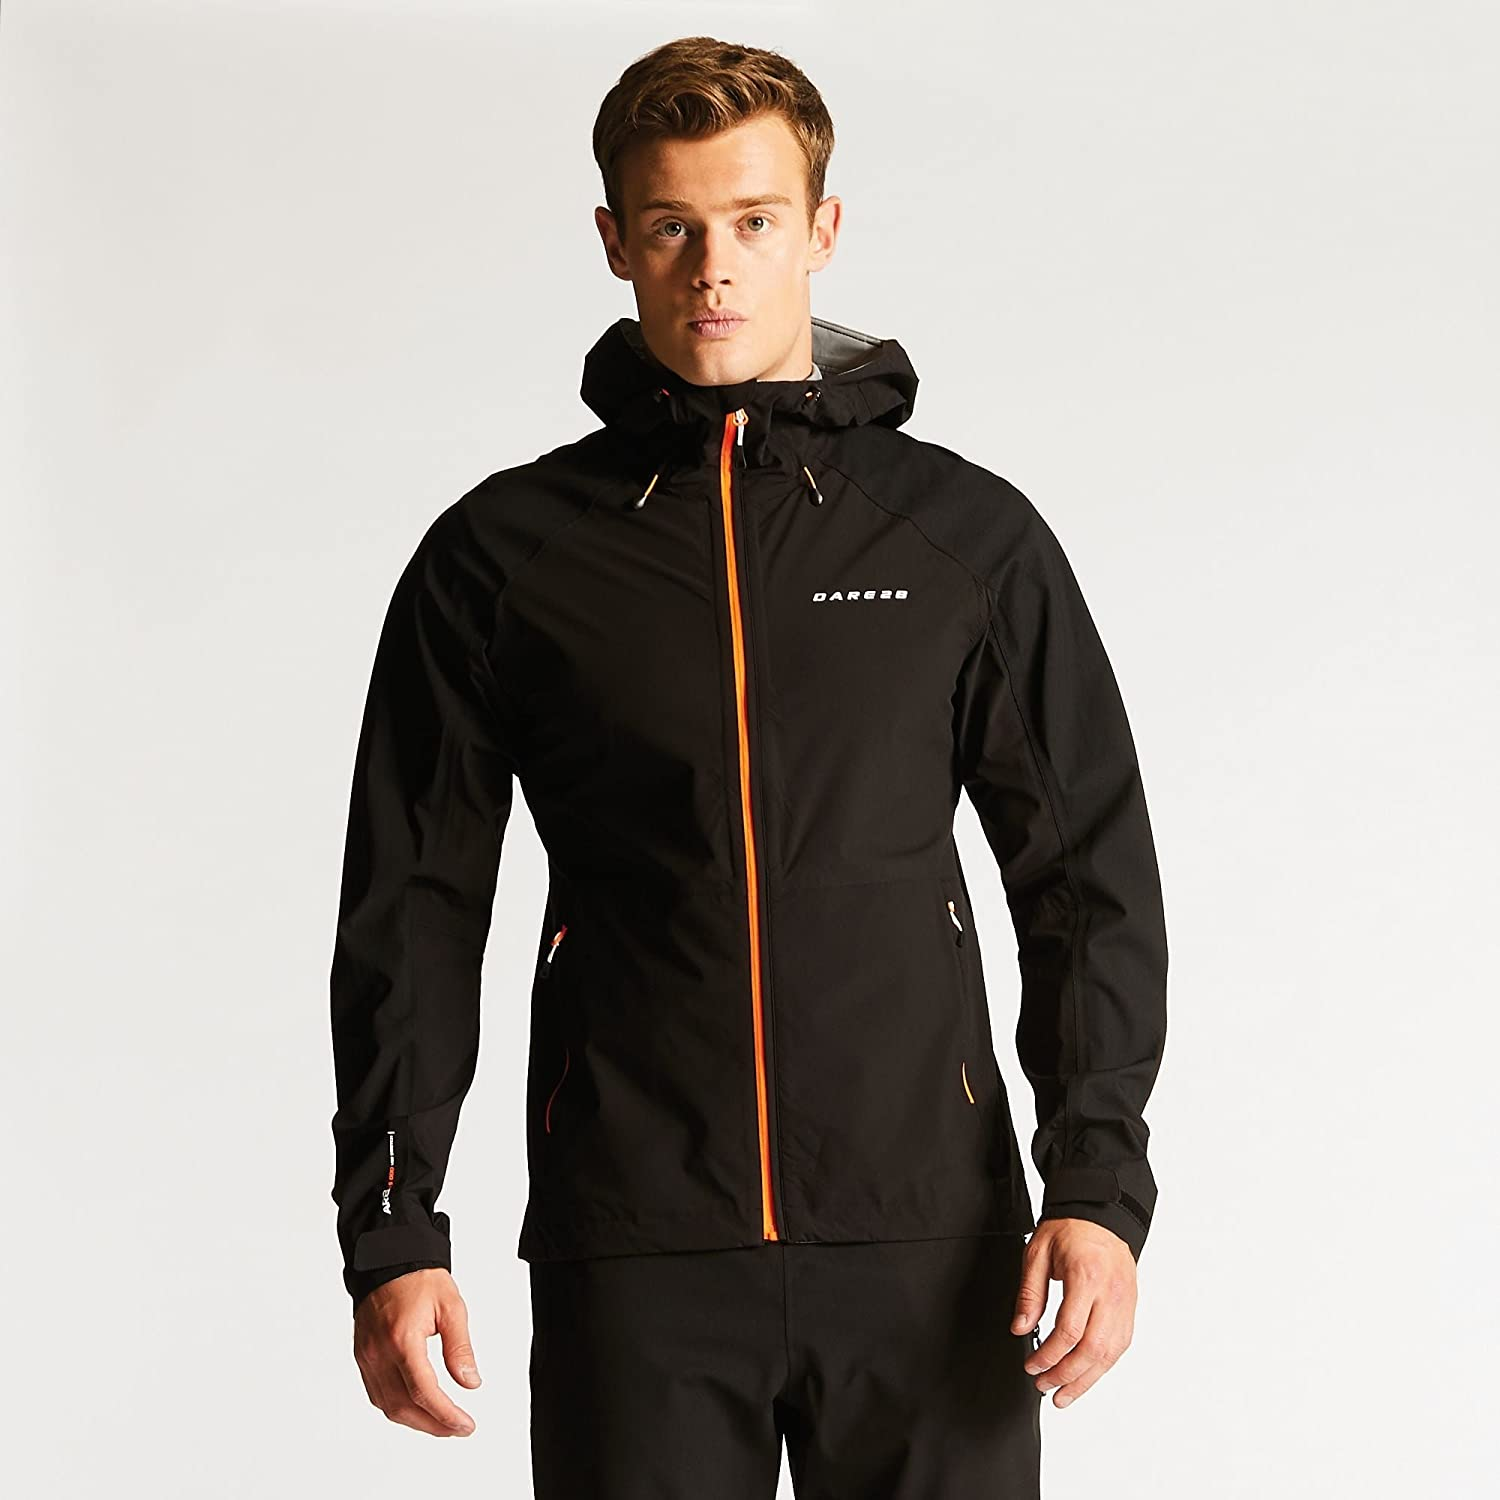 Dare 2b Mens Excluse Ii Lightweight and Breathable Water Repellent Shell Jacket